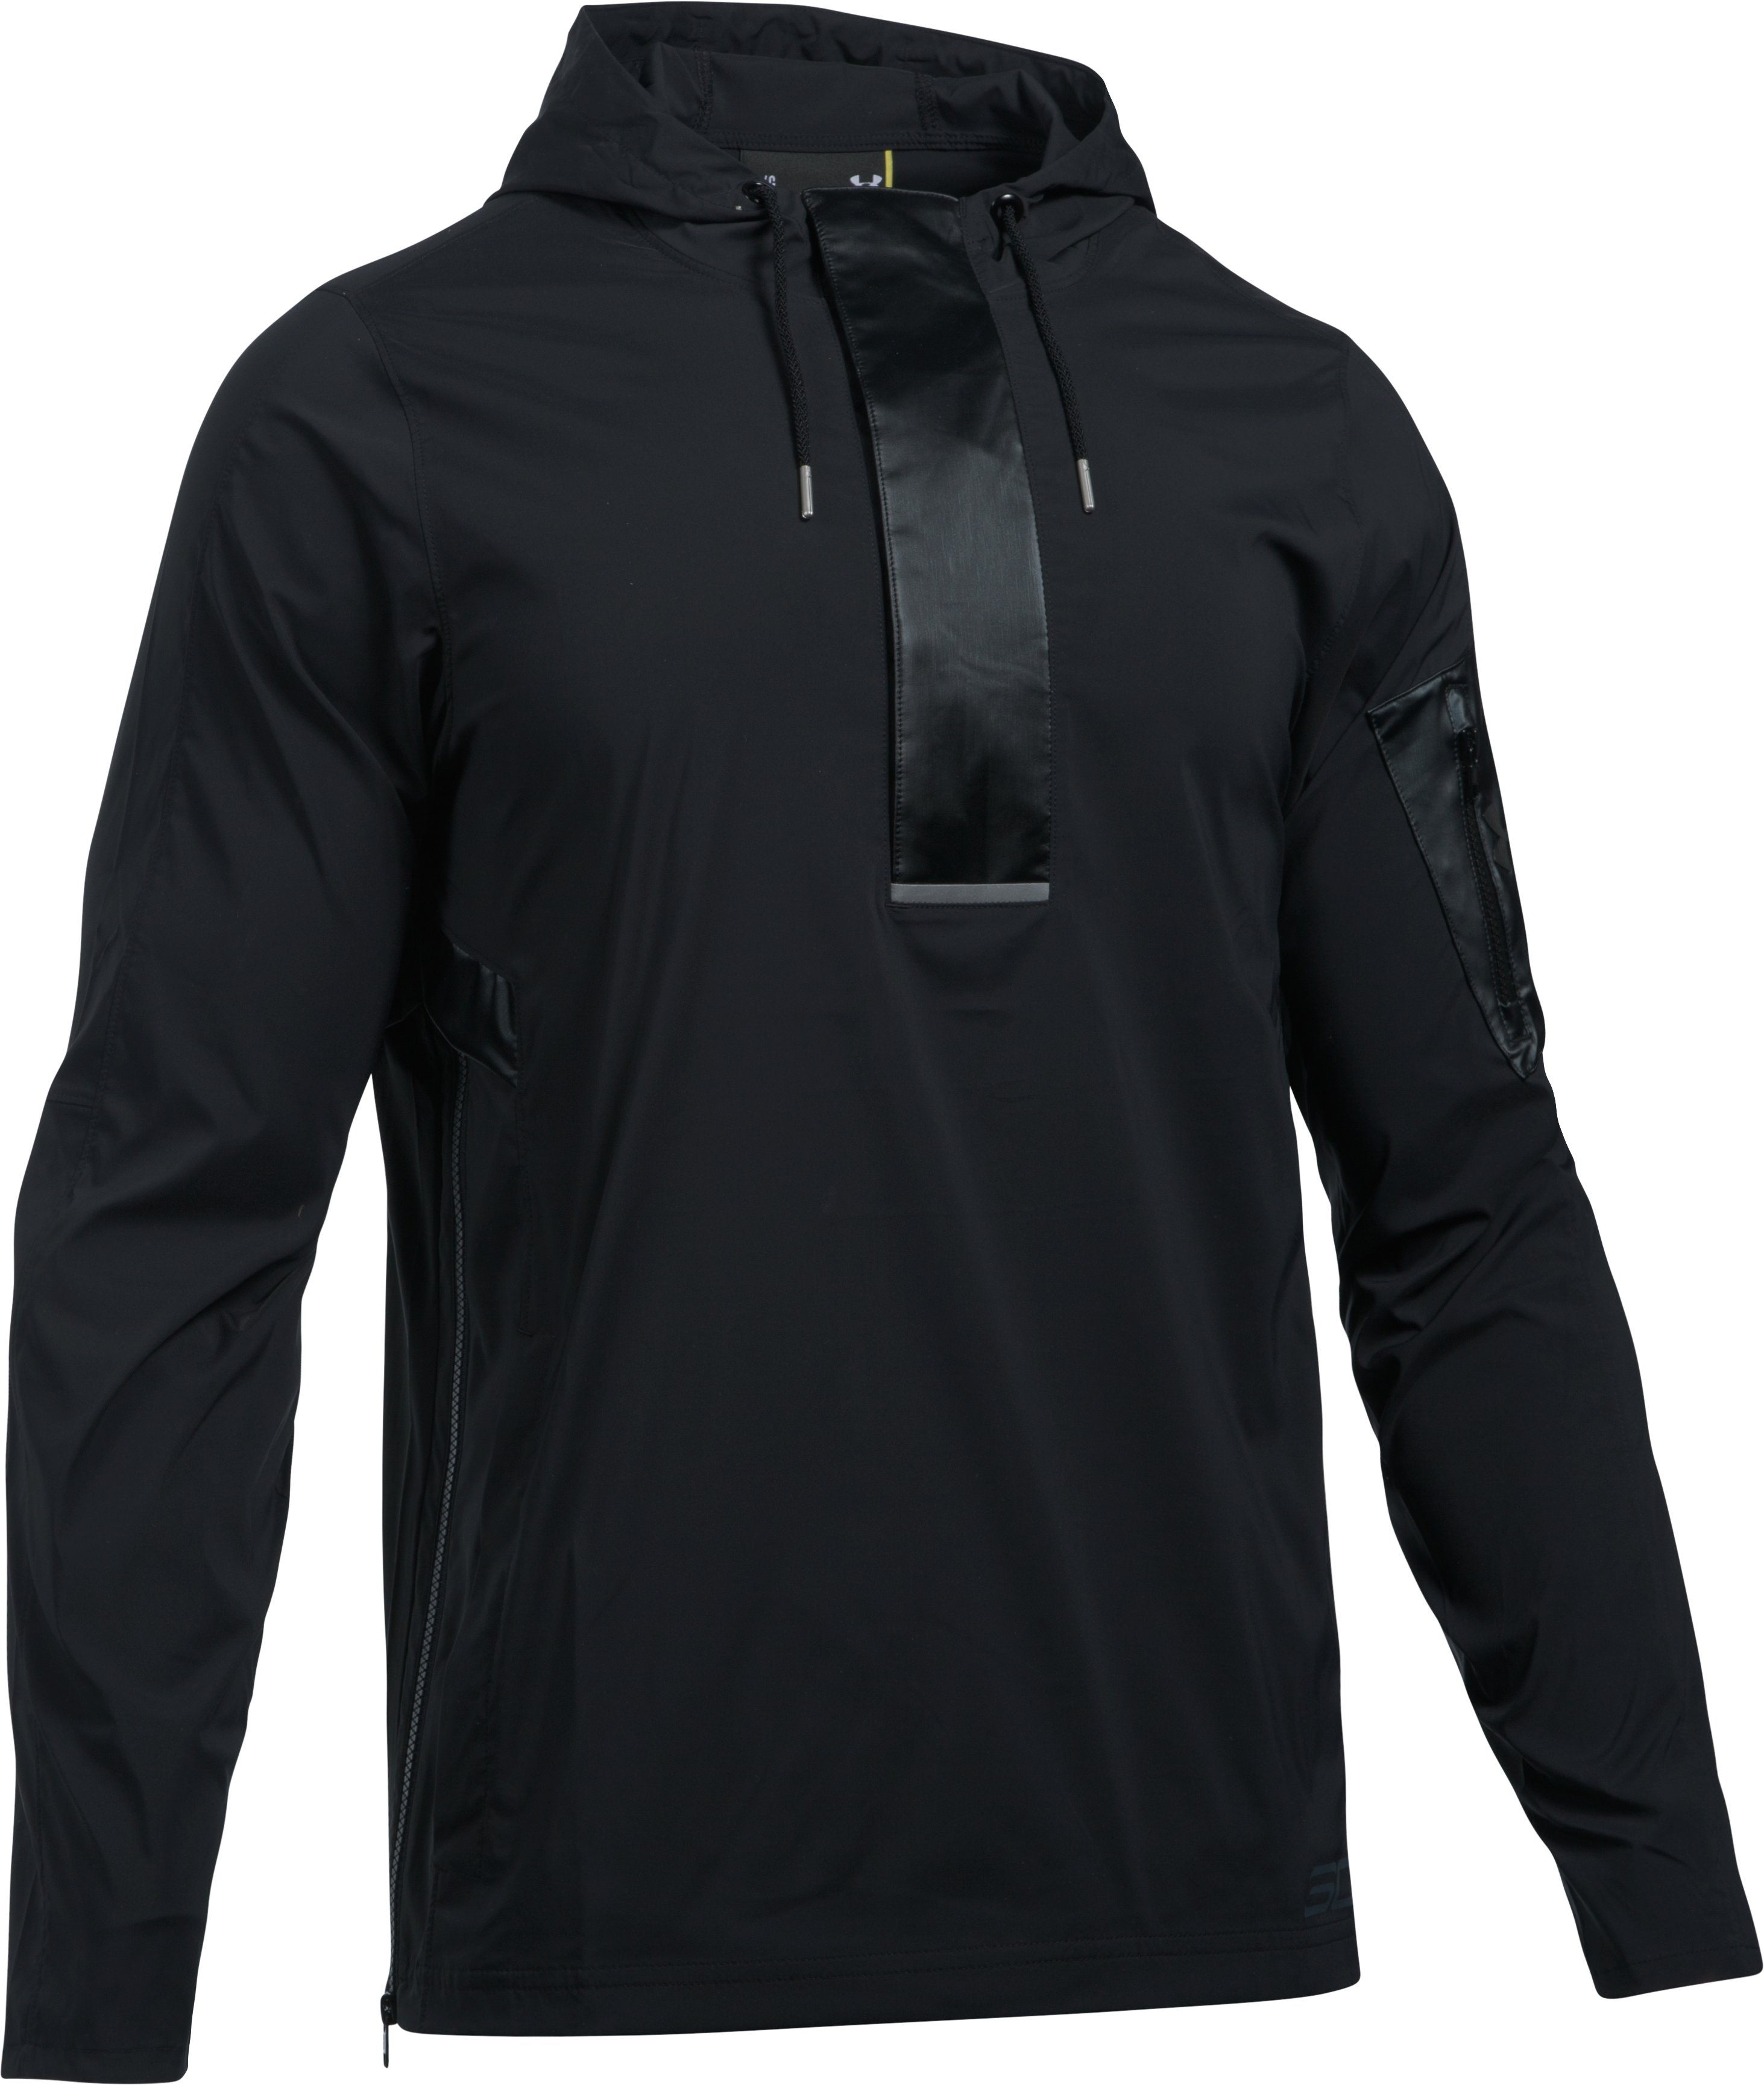 Men's SC30 Splash ½ Zip Jacket, Black ,